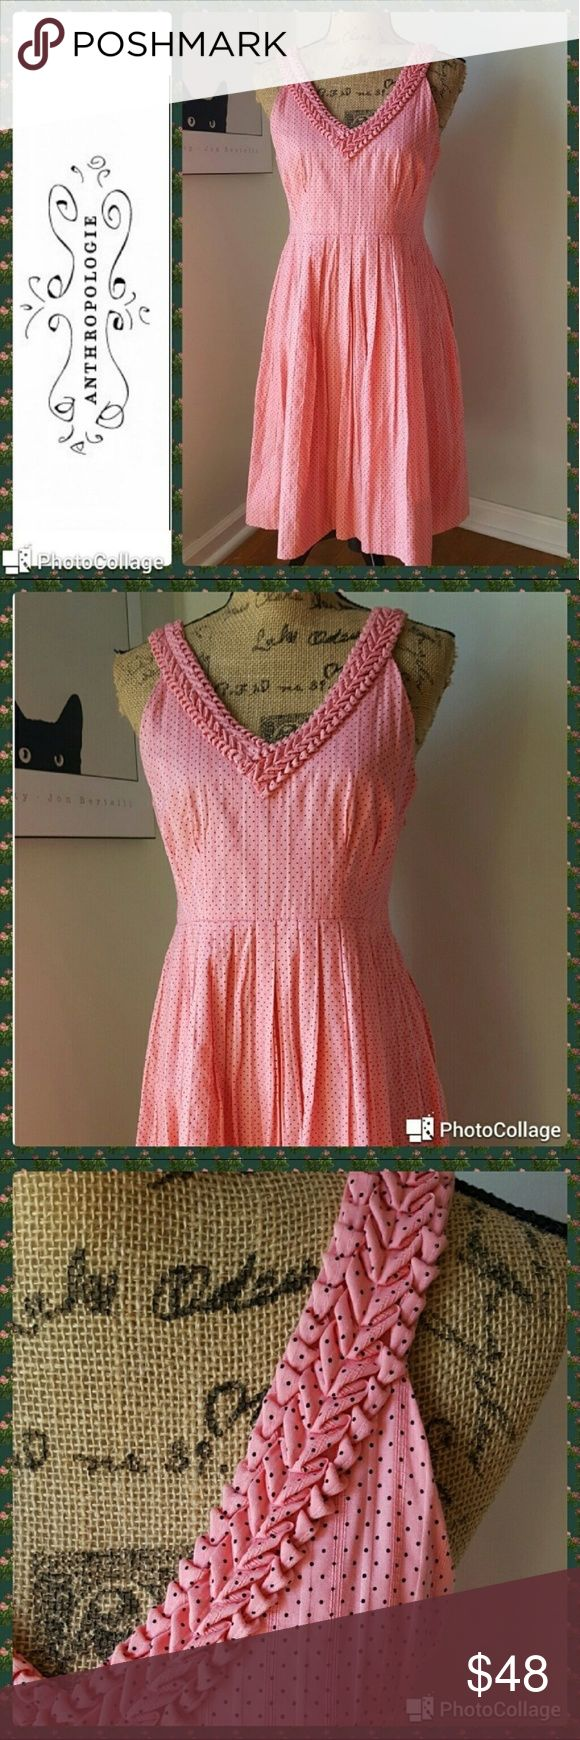 "Anthropologie Moulinette Soeurs In excellent condition.  Anthropologie Moulinette Soeurs melon ball dress. Salmon pink with black polka dots pattern.  100% cotton fit and flare style.  V-neckline with puckered detailed. Pleated skirt. Side zipper.  Completely lined.  Measurements are length 35"", bust 35"", waist 30"". Size states size 4 but fits more like a 6-8. Really adorable dress for upcoming warm weather! xxv Anthropologie Dresses"